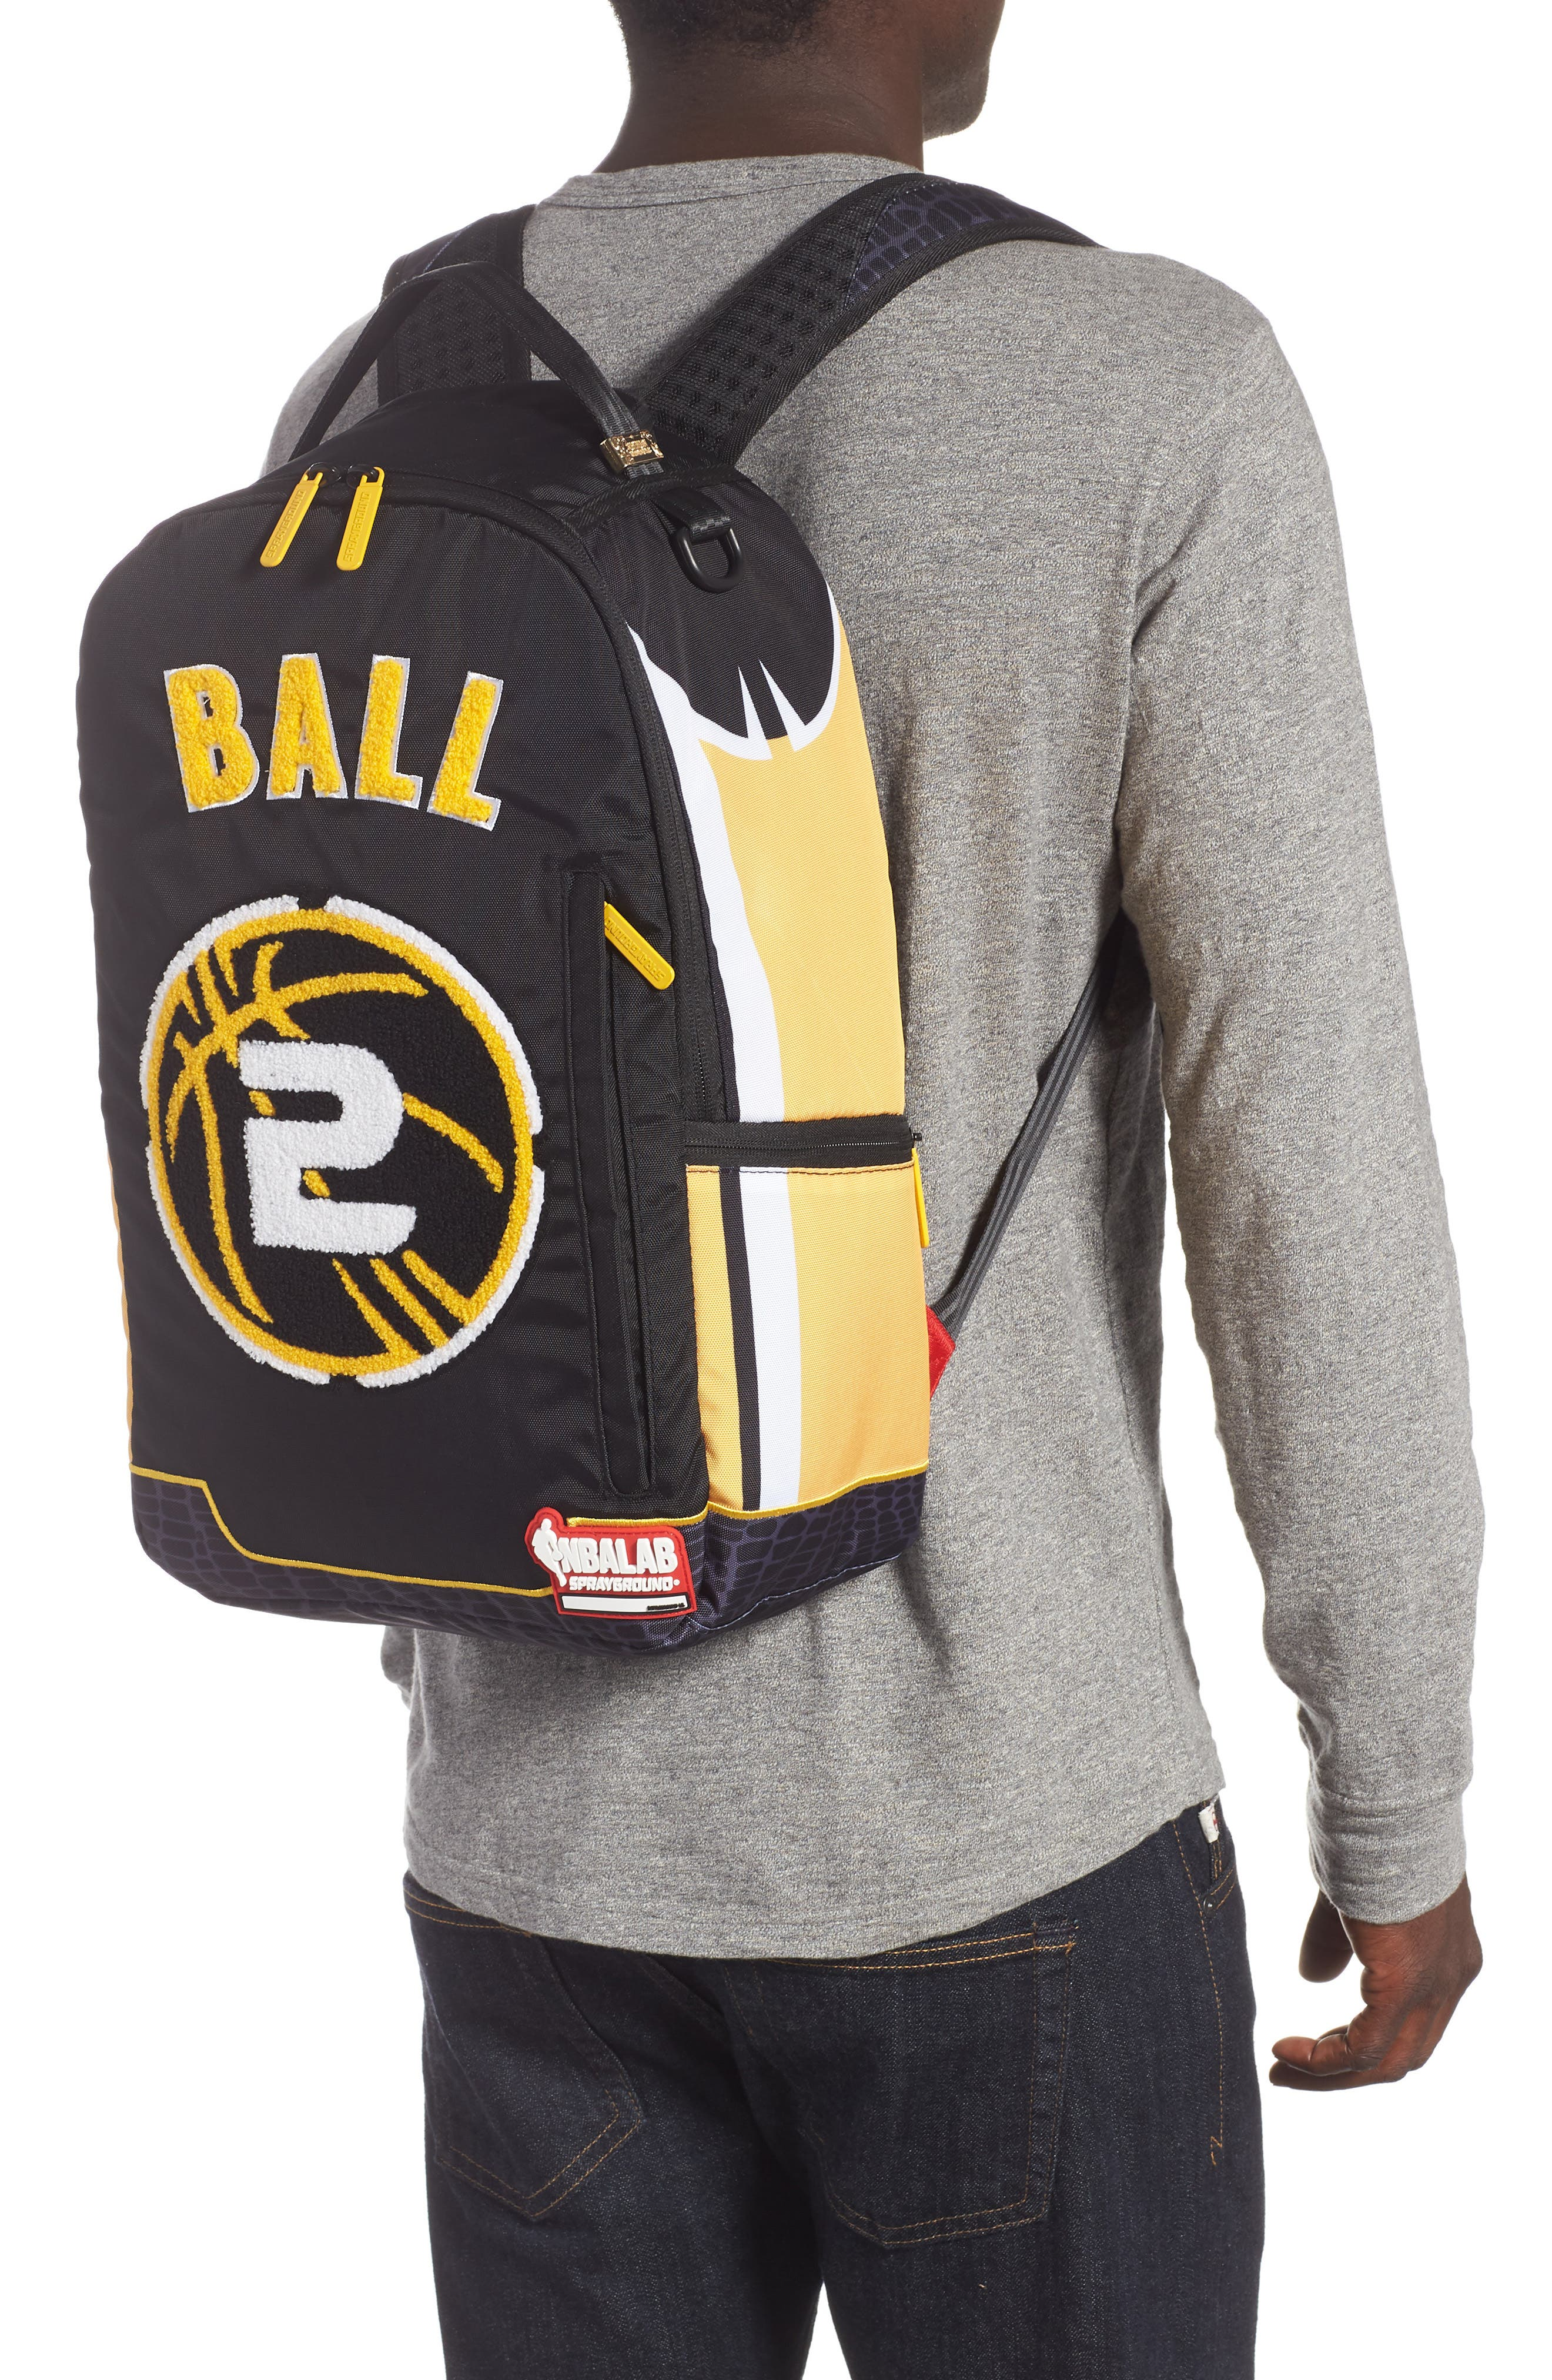 Ball Jersey Backpack,                             Alternate thumbnail 2, color,                             BLACK